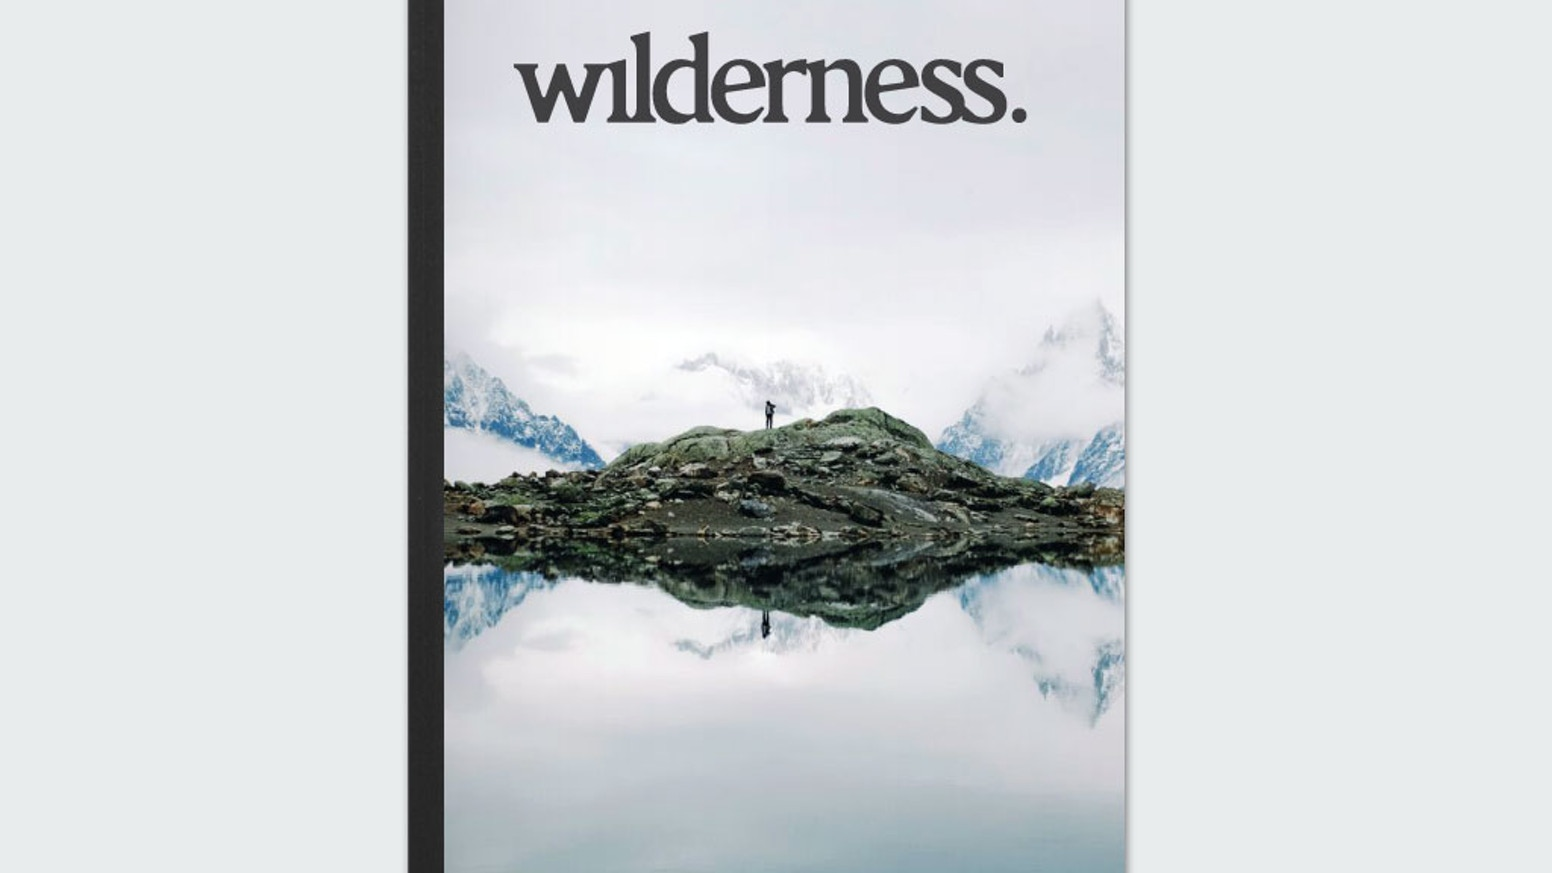 Imagine if McQueen, Kerouac, Muir & Whitman started a magazine. Let's make Wilderness; a men's mag about exploration, character & grit.